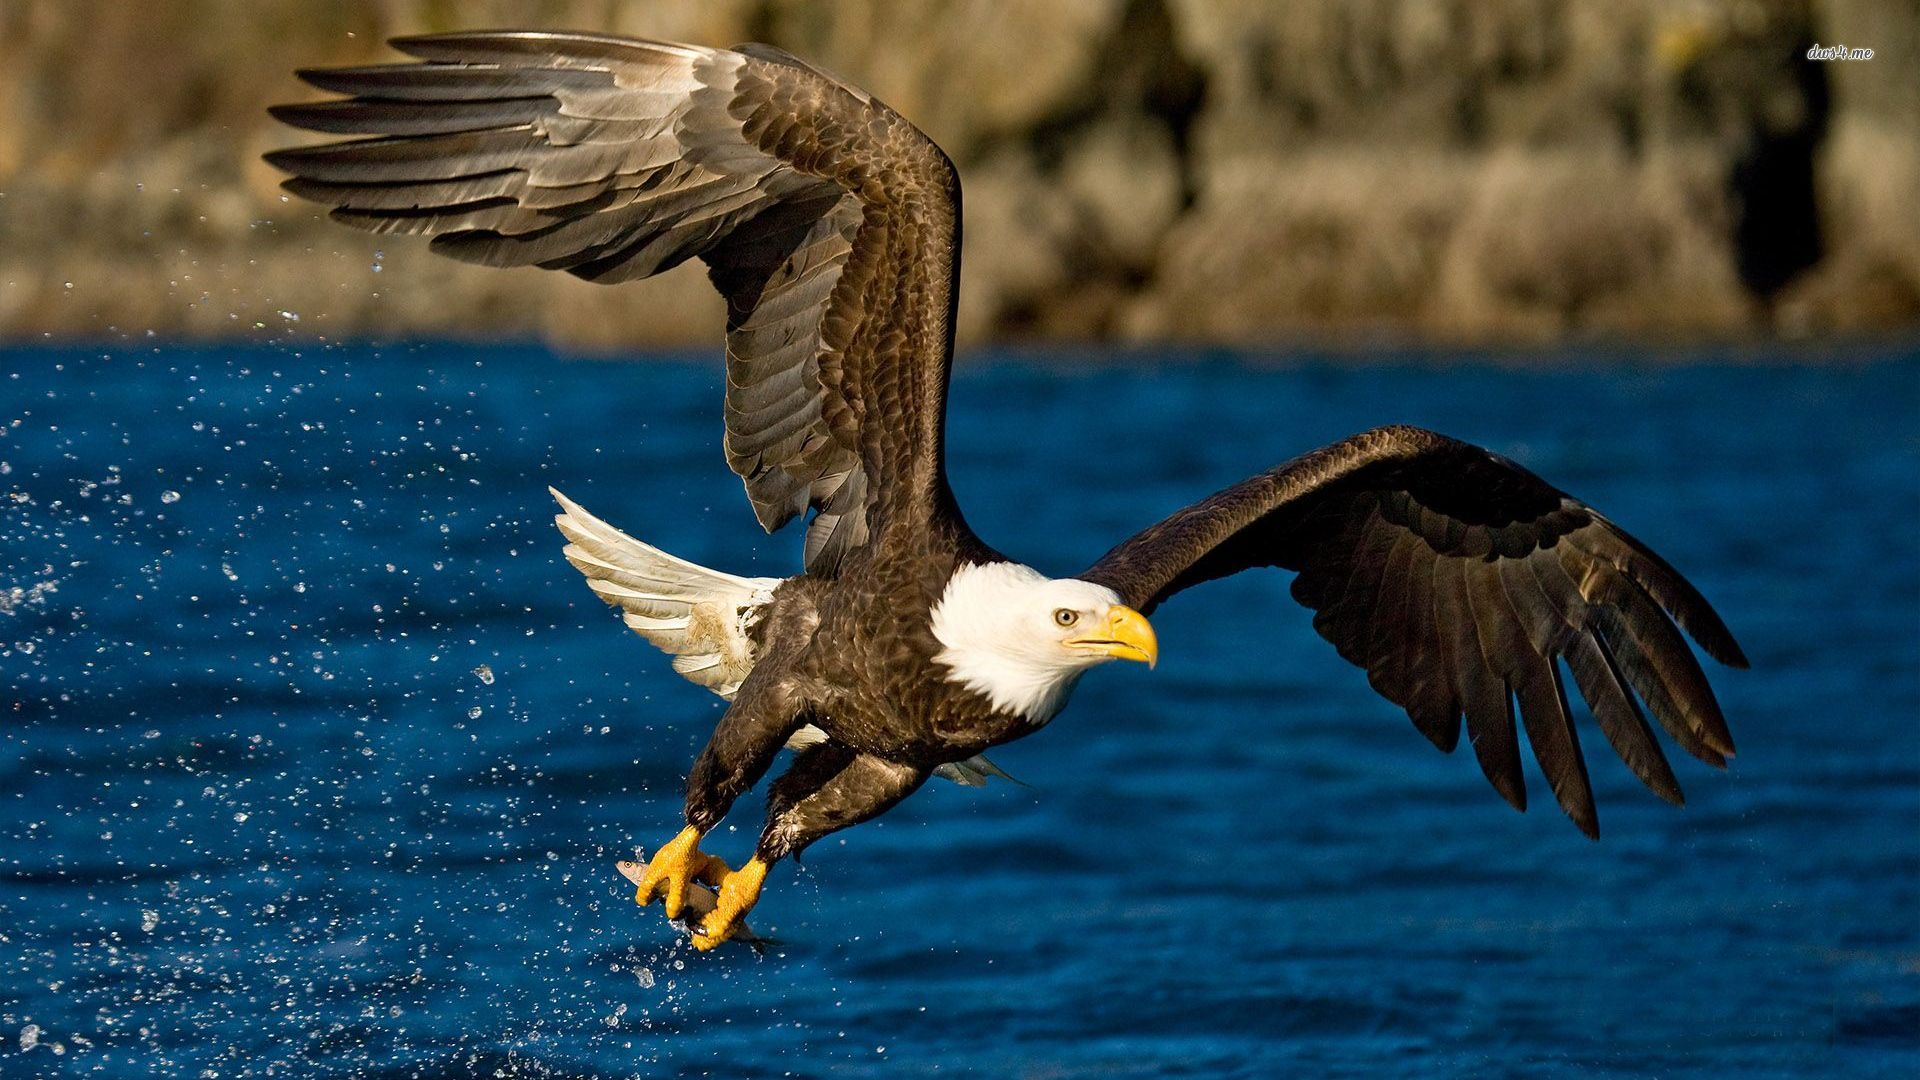 Eagle Wallpapers Free Download Group  1920x1080